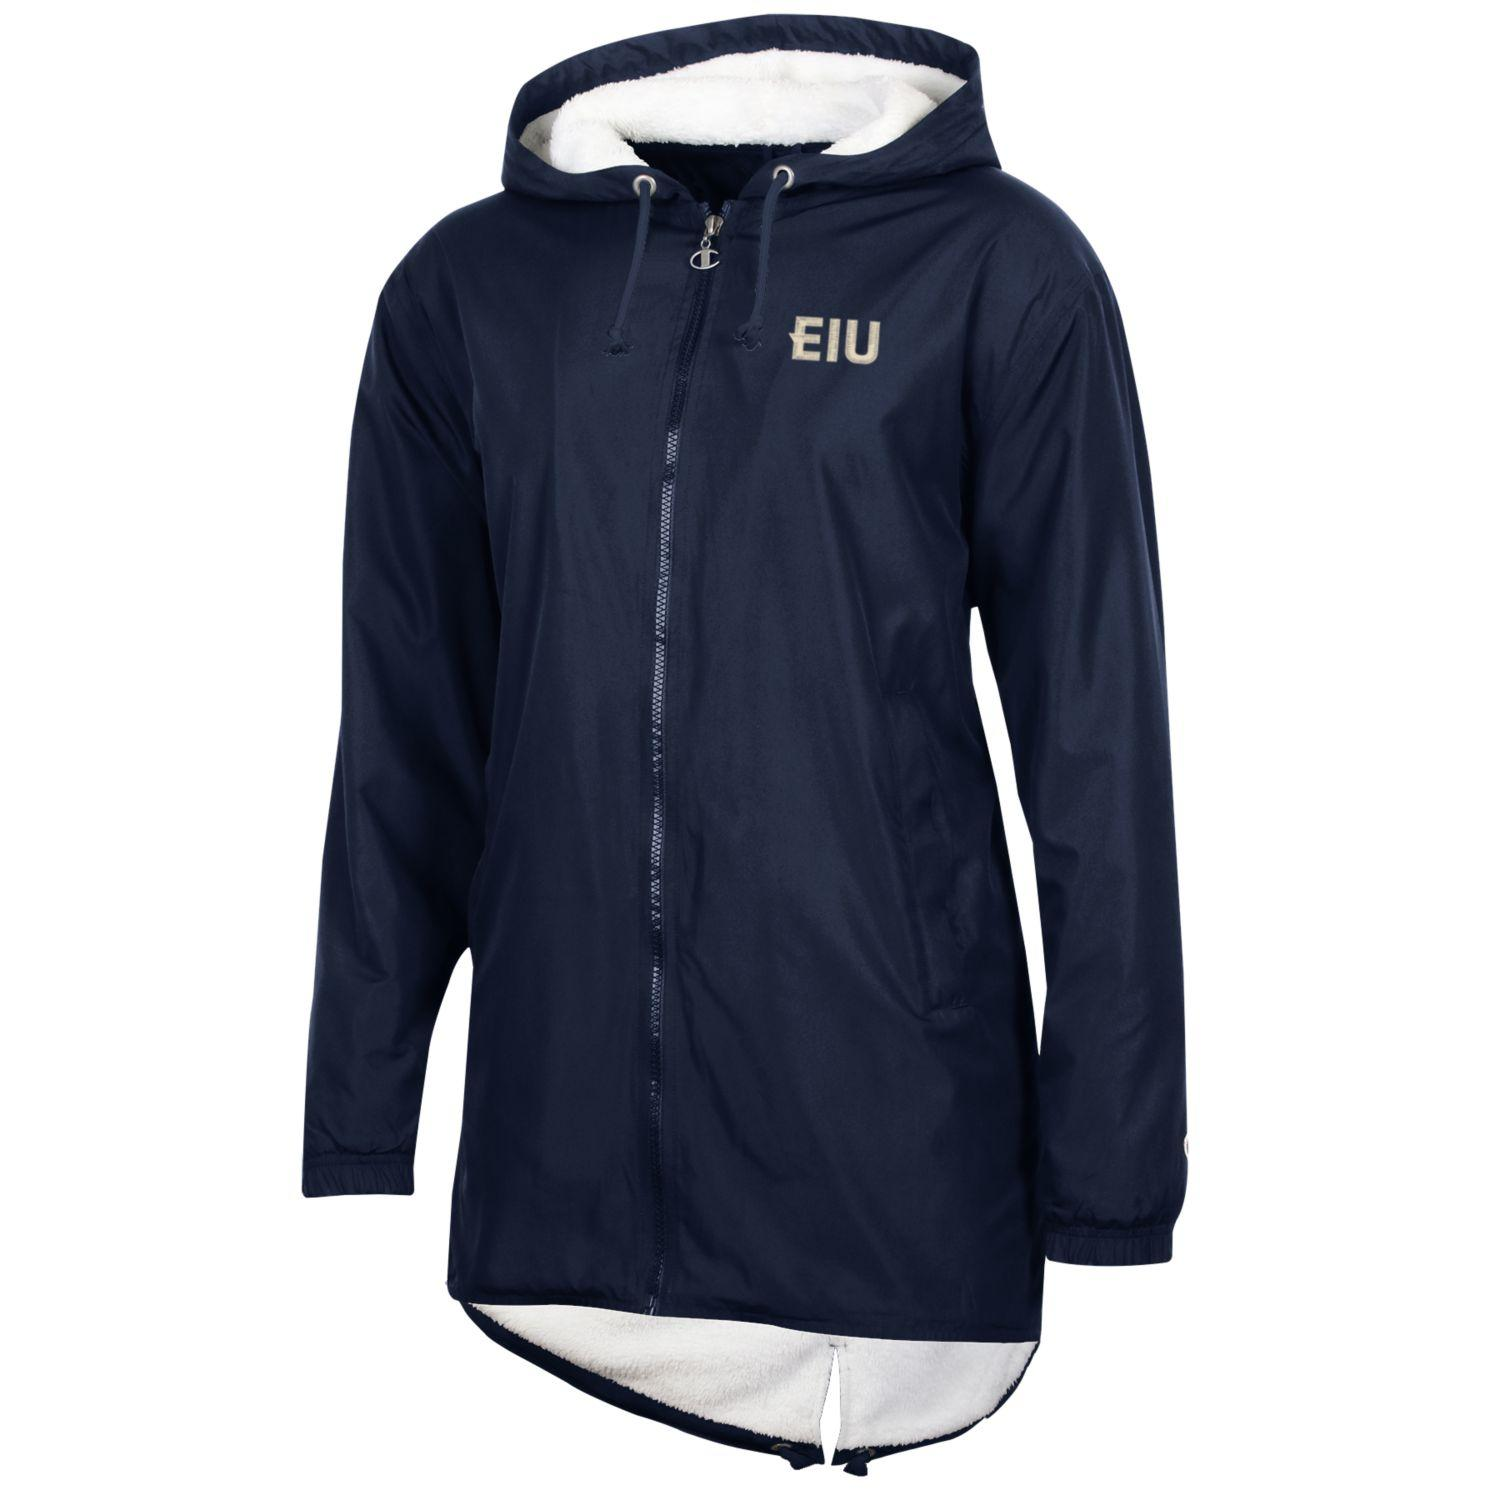 Image For EIU Sherpa Navy Jacket